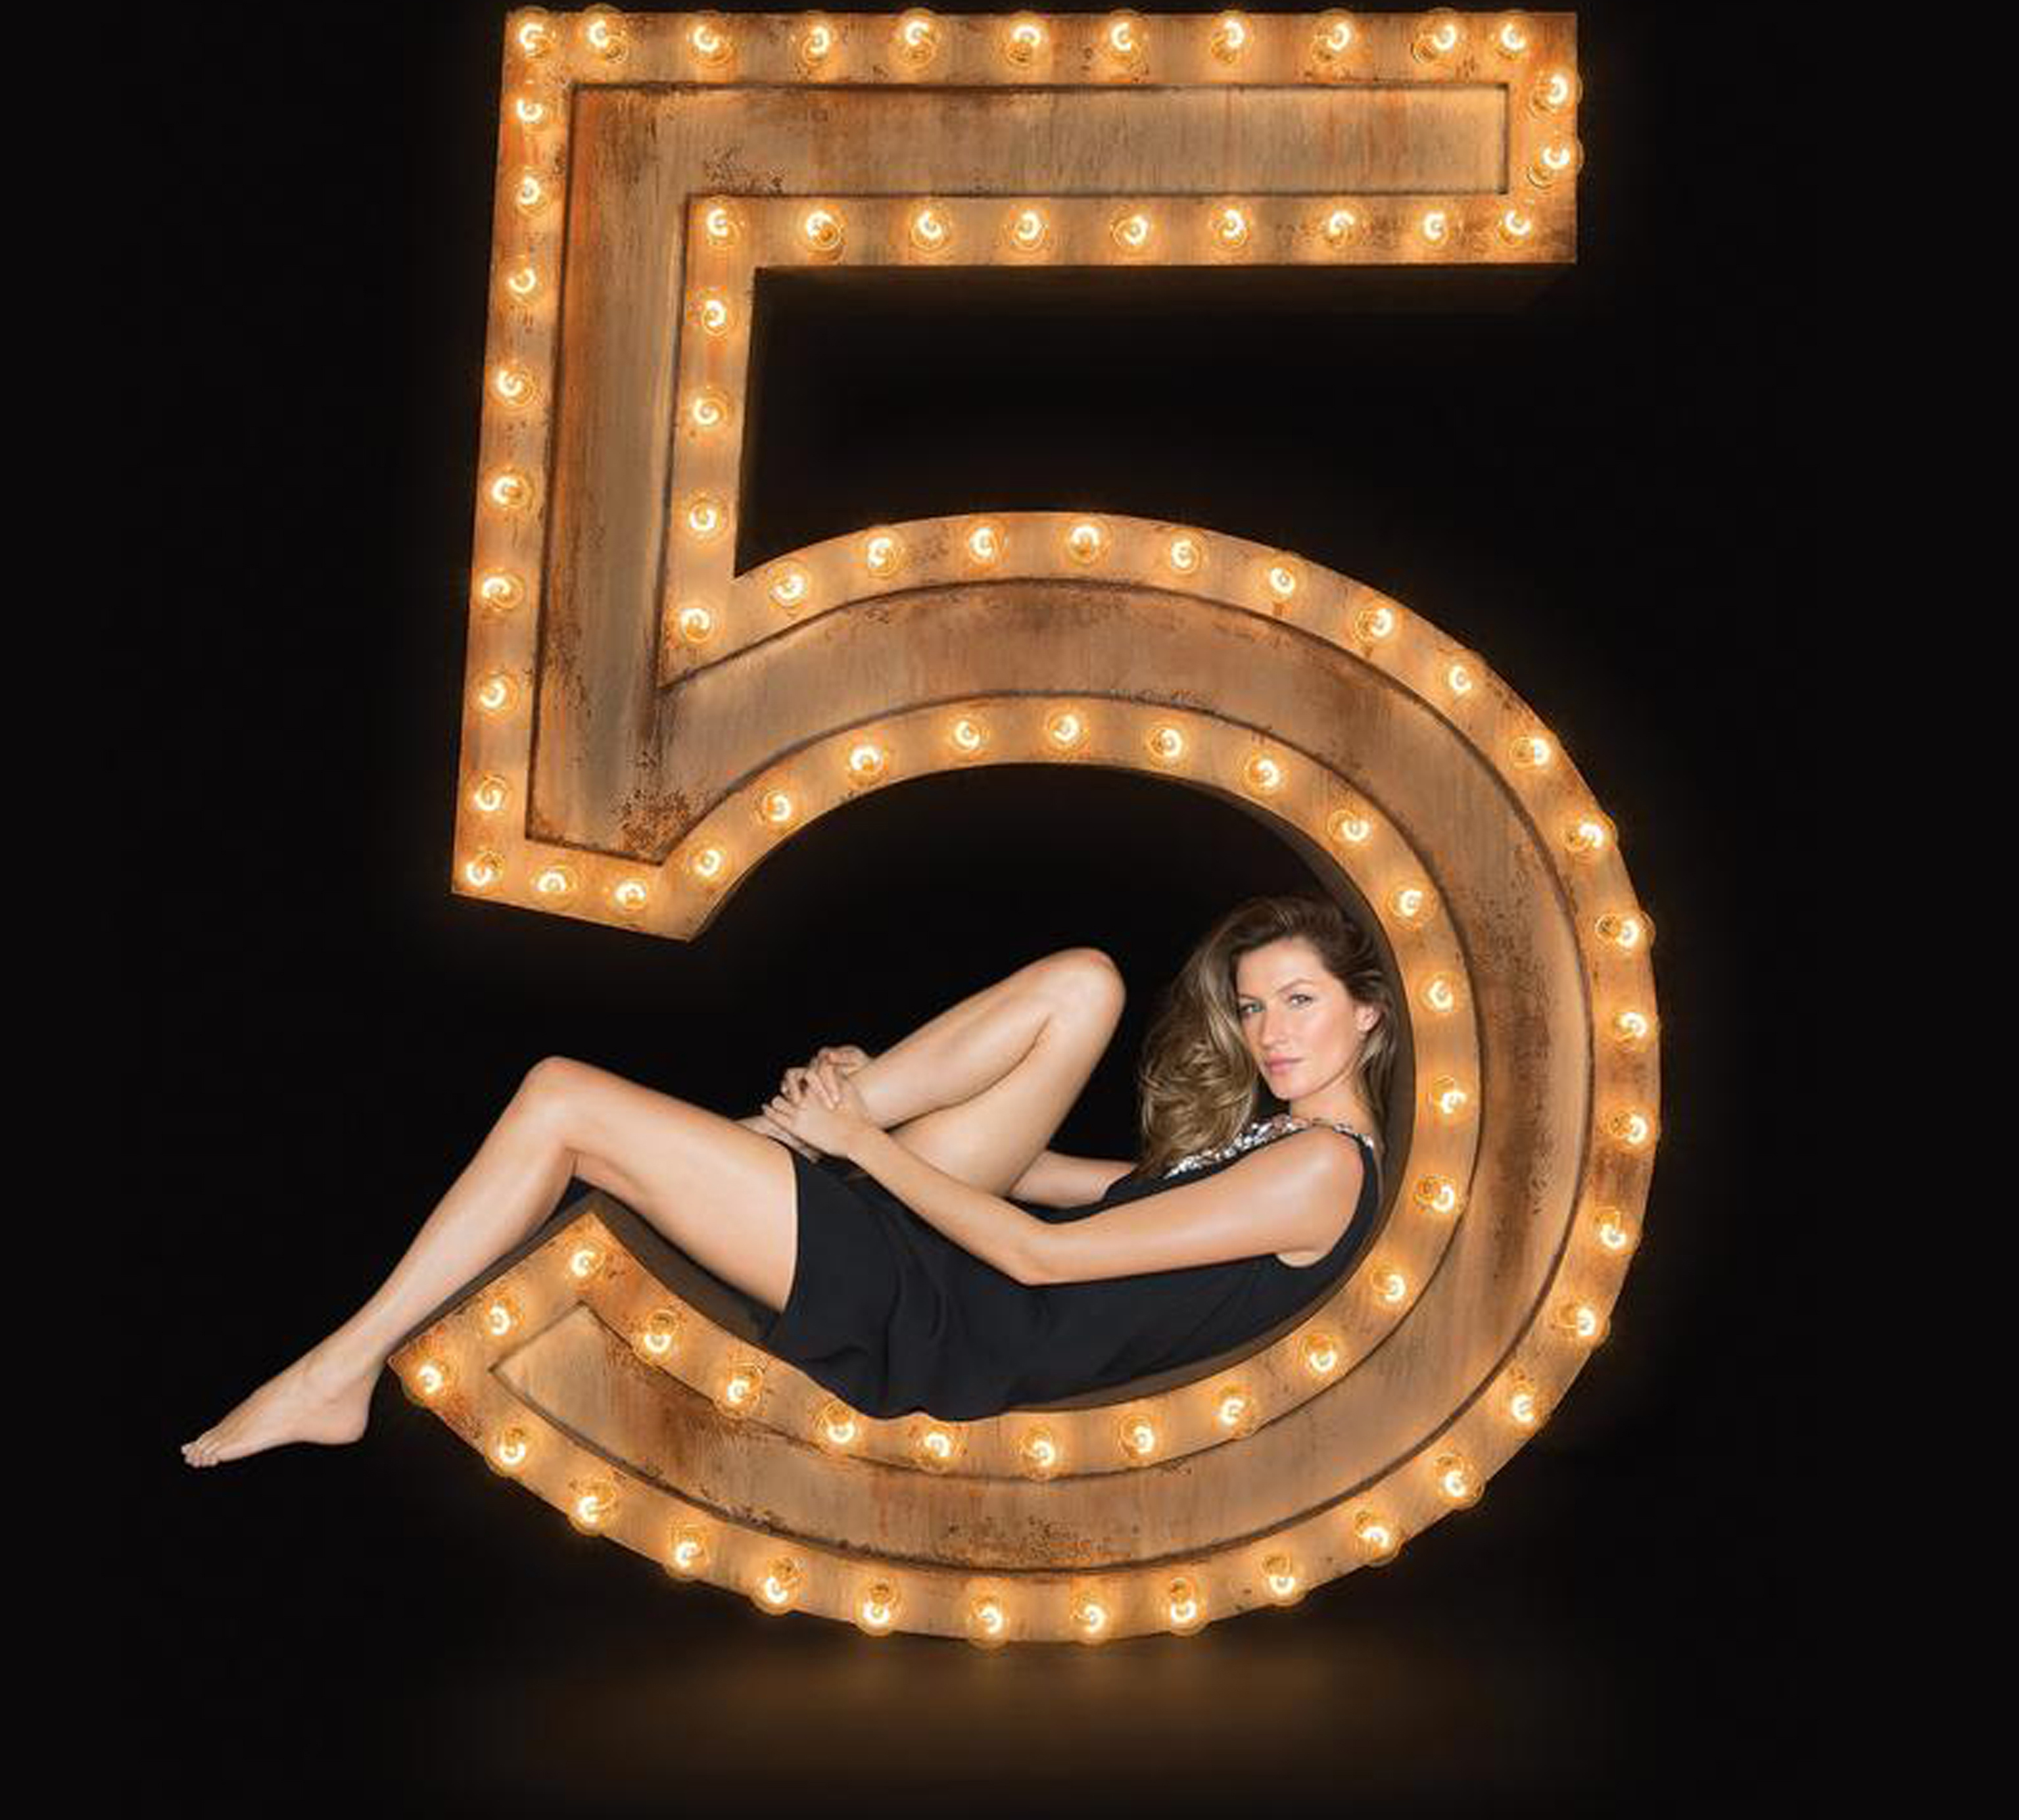 Gisele Bundchen. The One That I Want.<br> Chanel No. 5